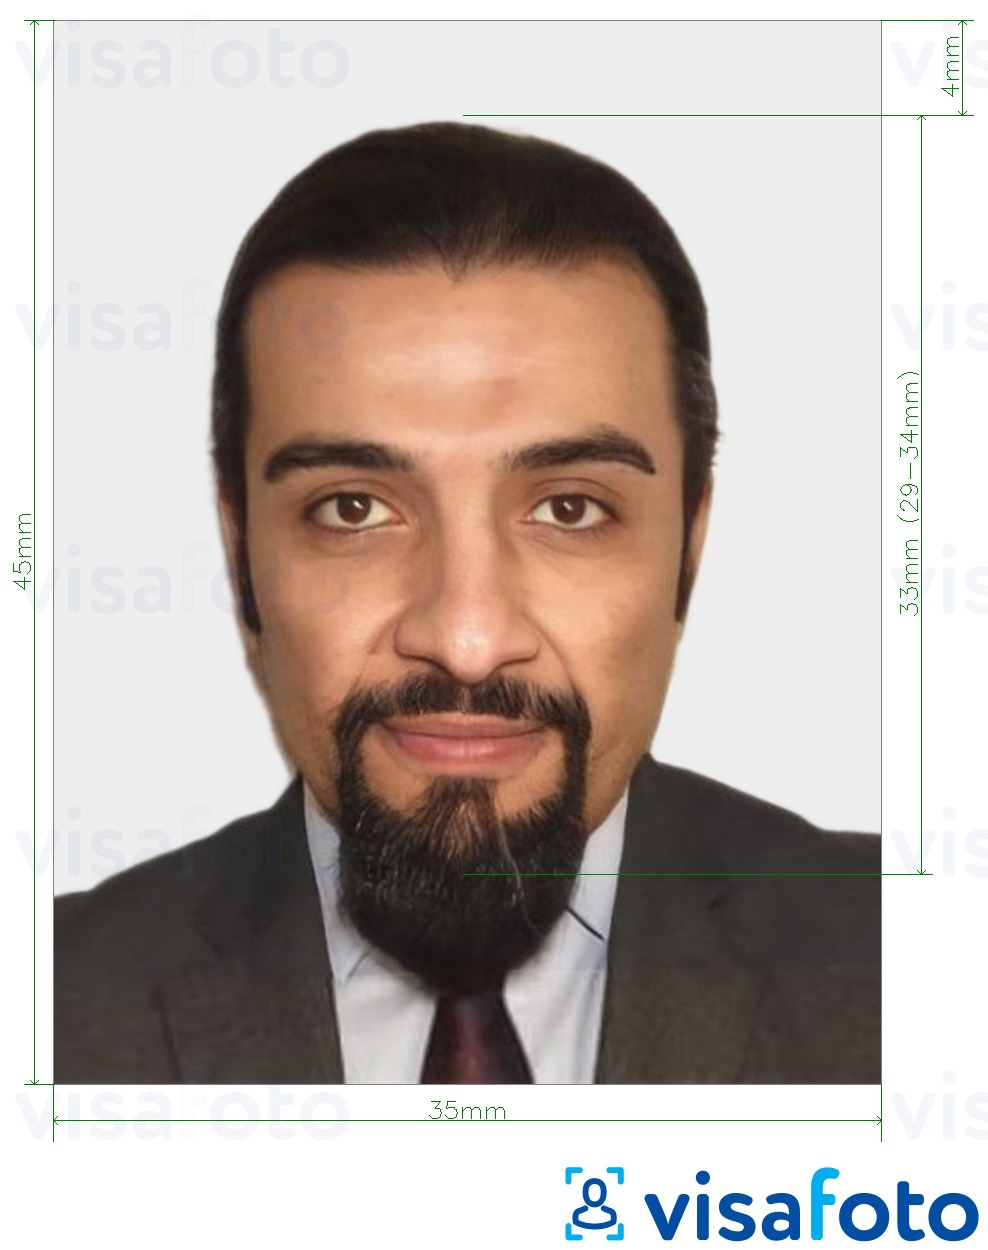 Example of photo for Morocco National ID Card 35x45 mm (3.5x4.5 cm) with exact size specification